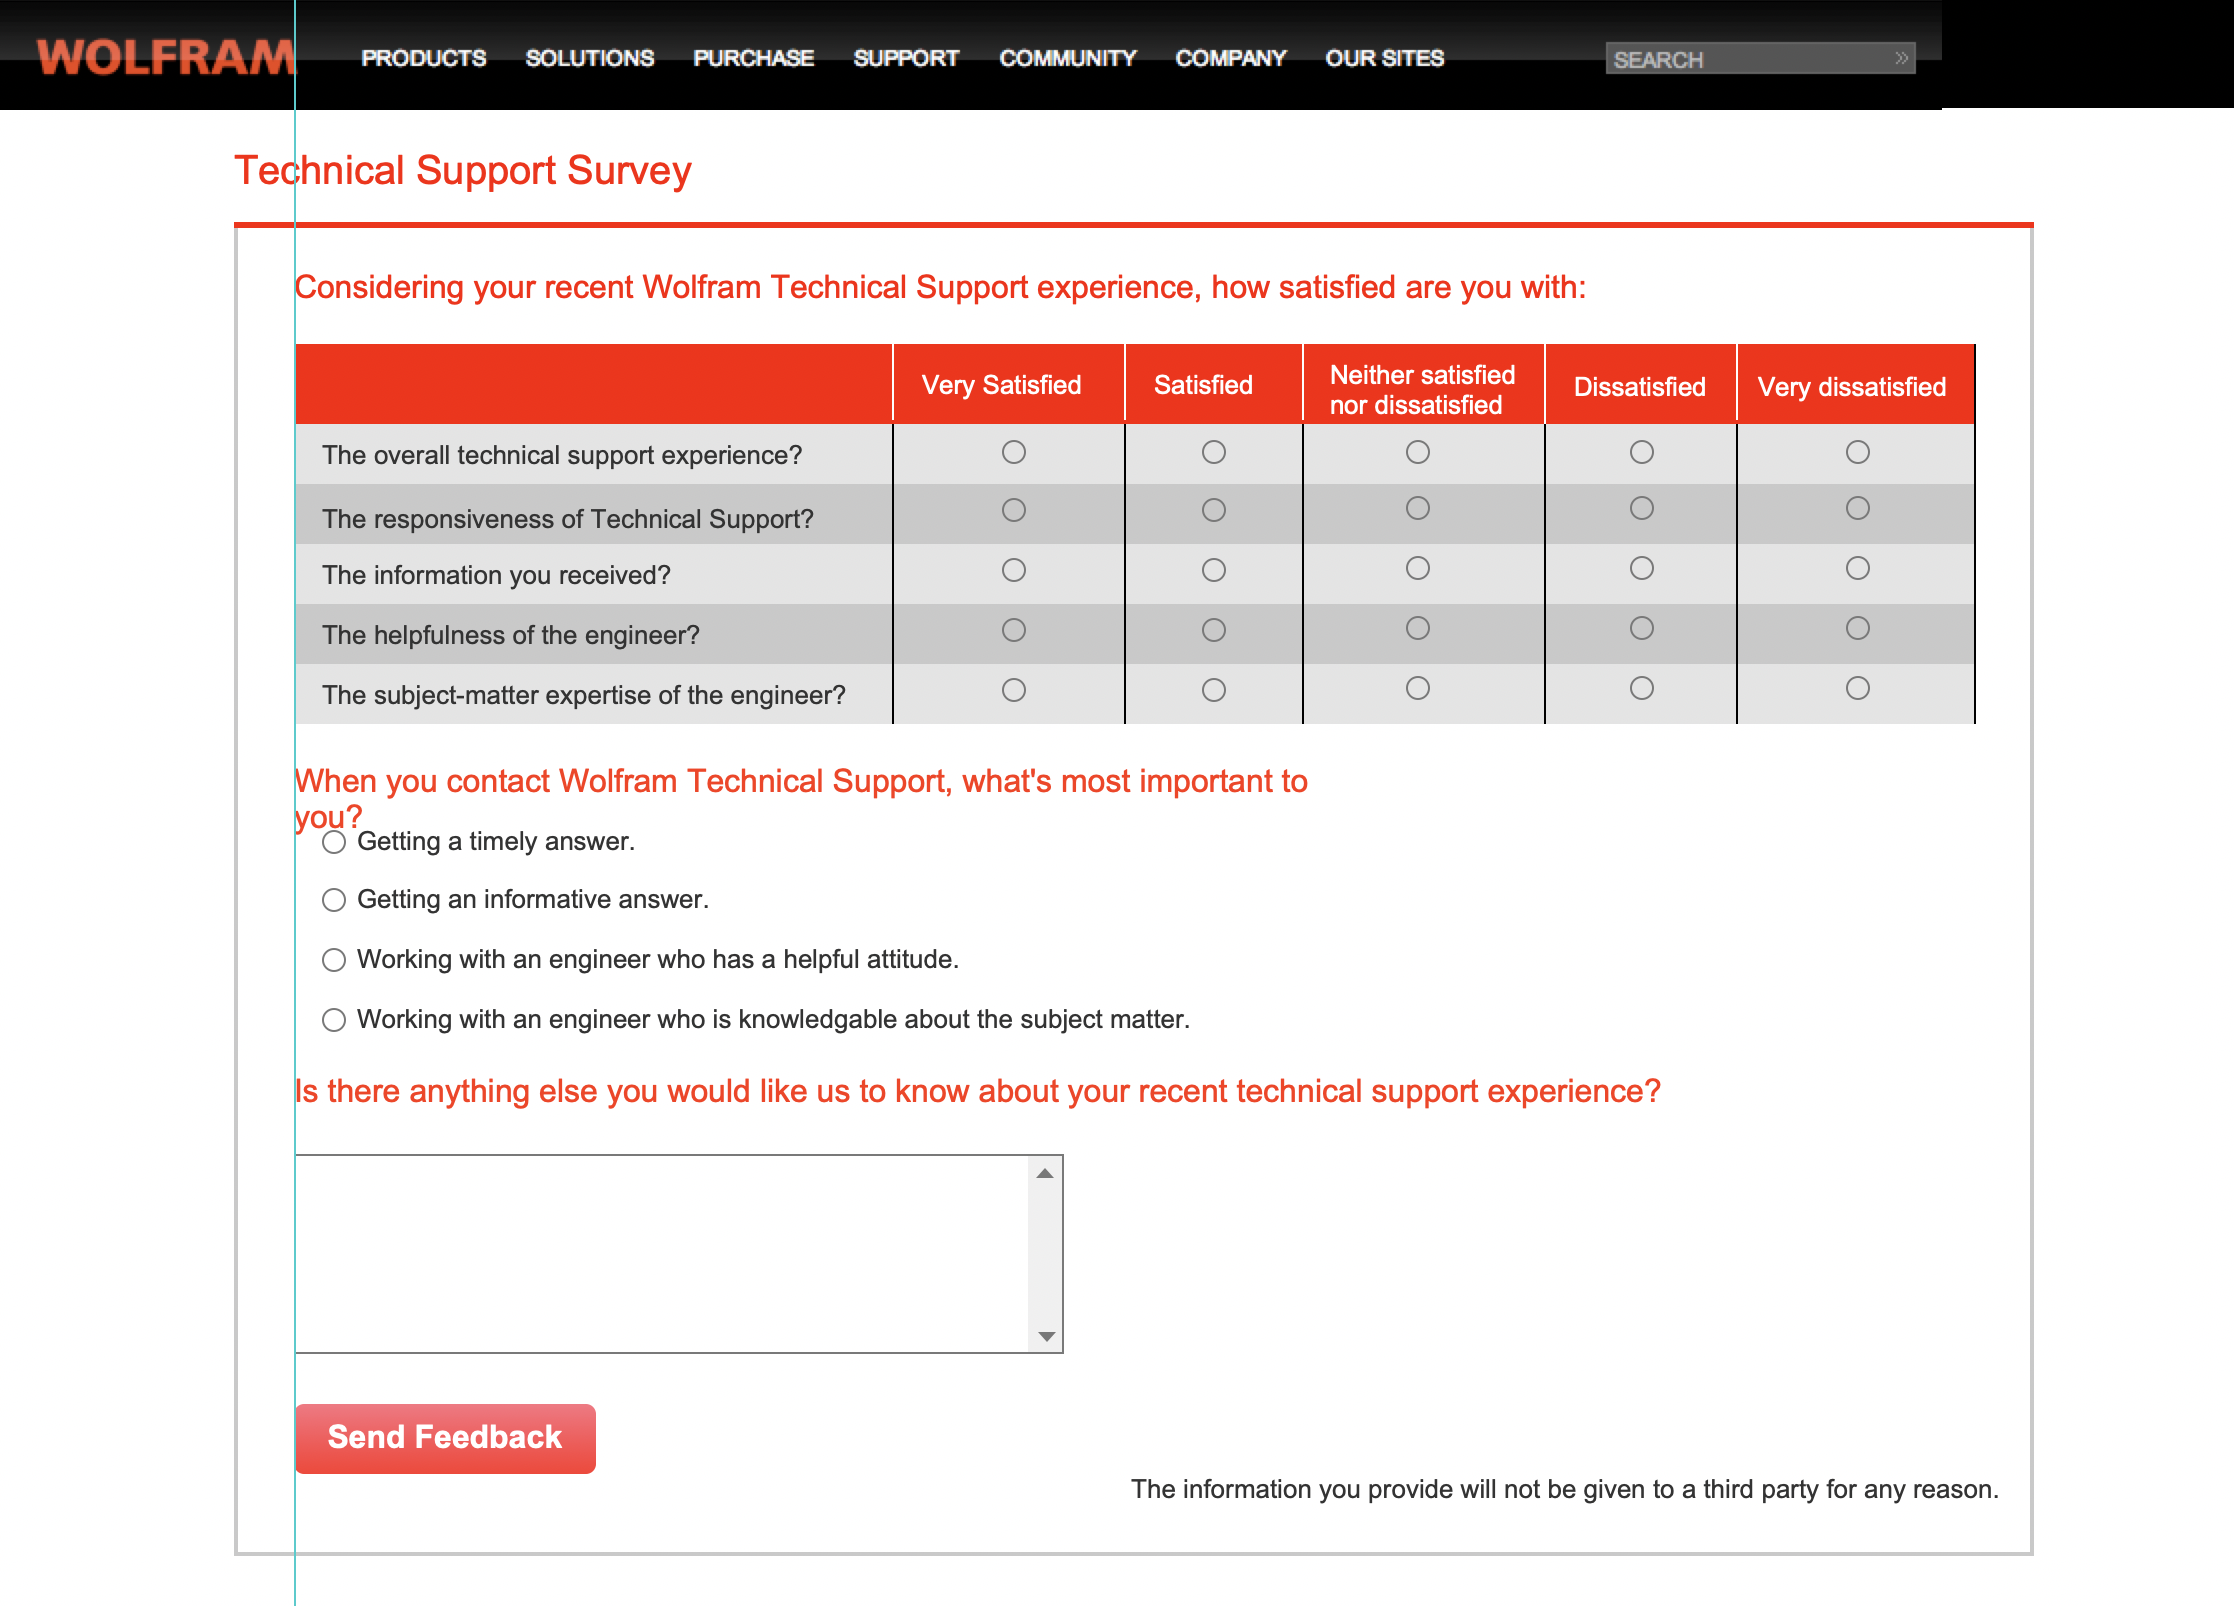 Technical support survey system wireframe